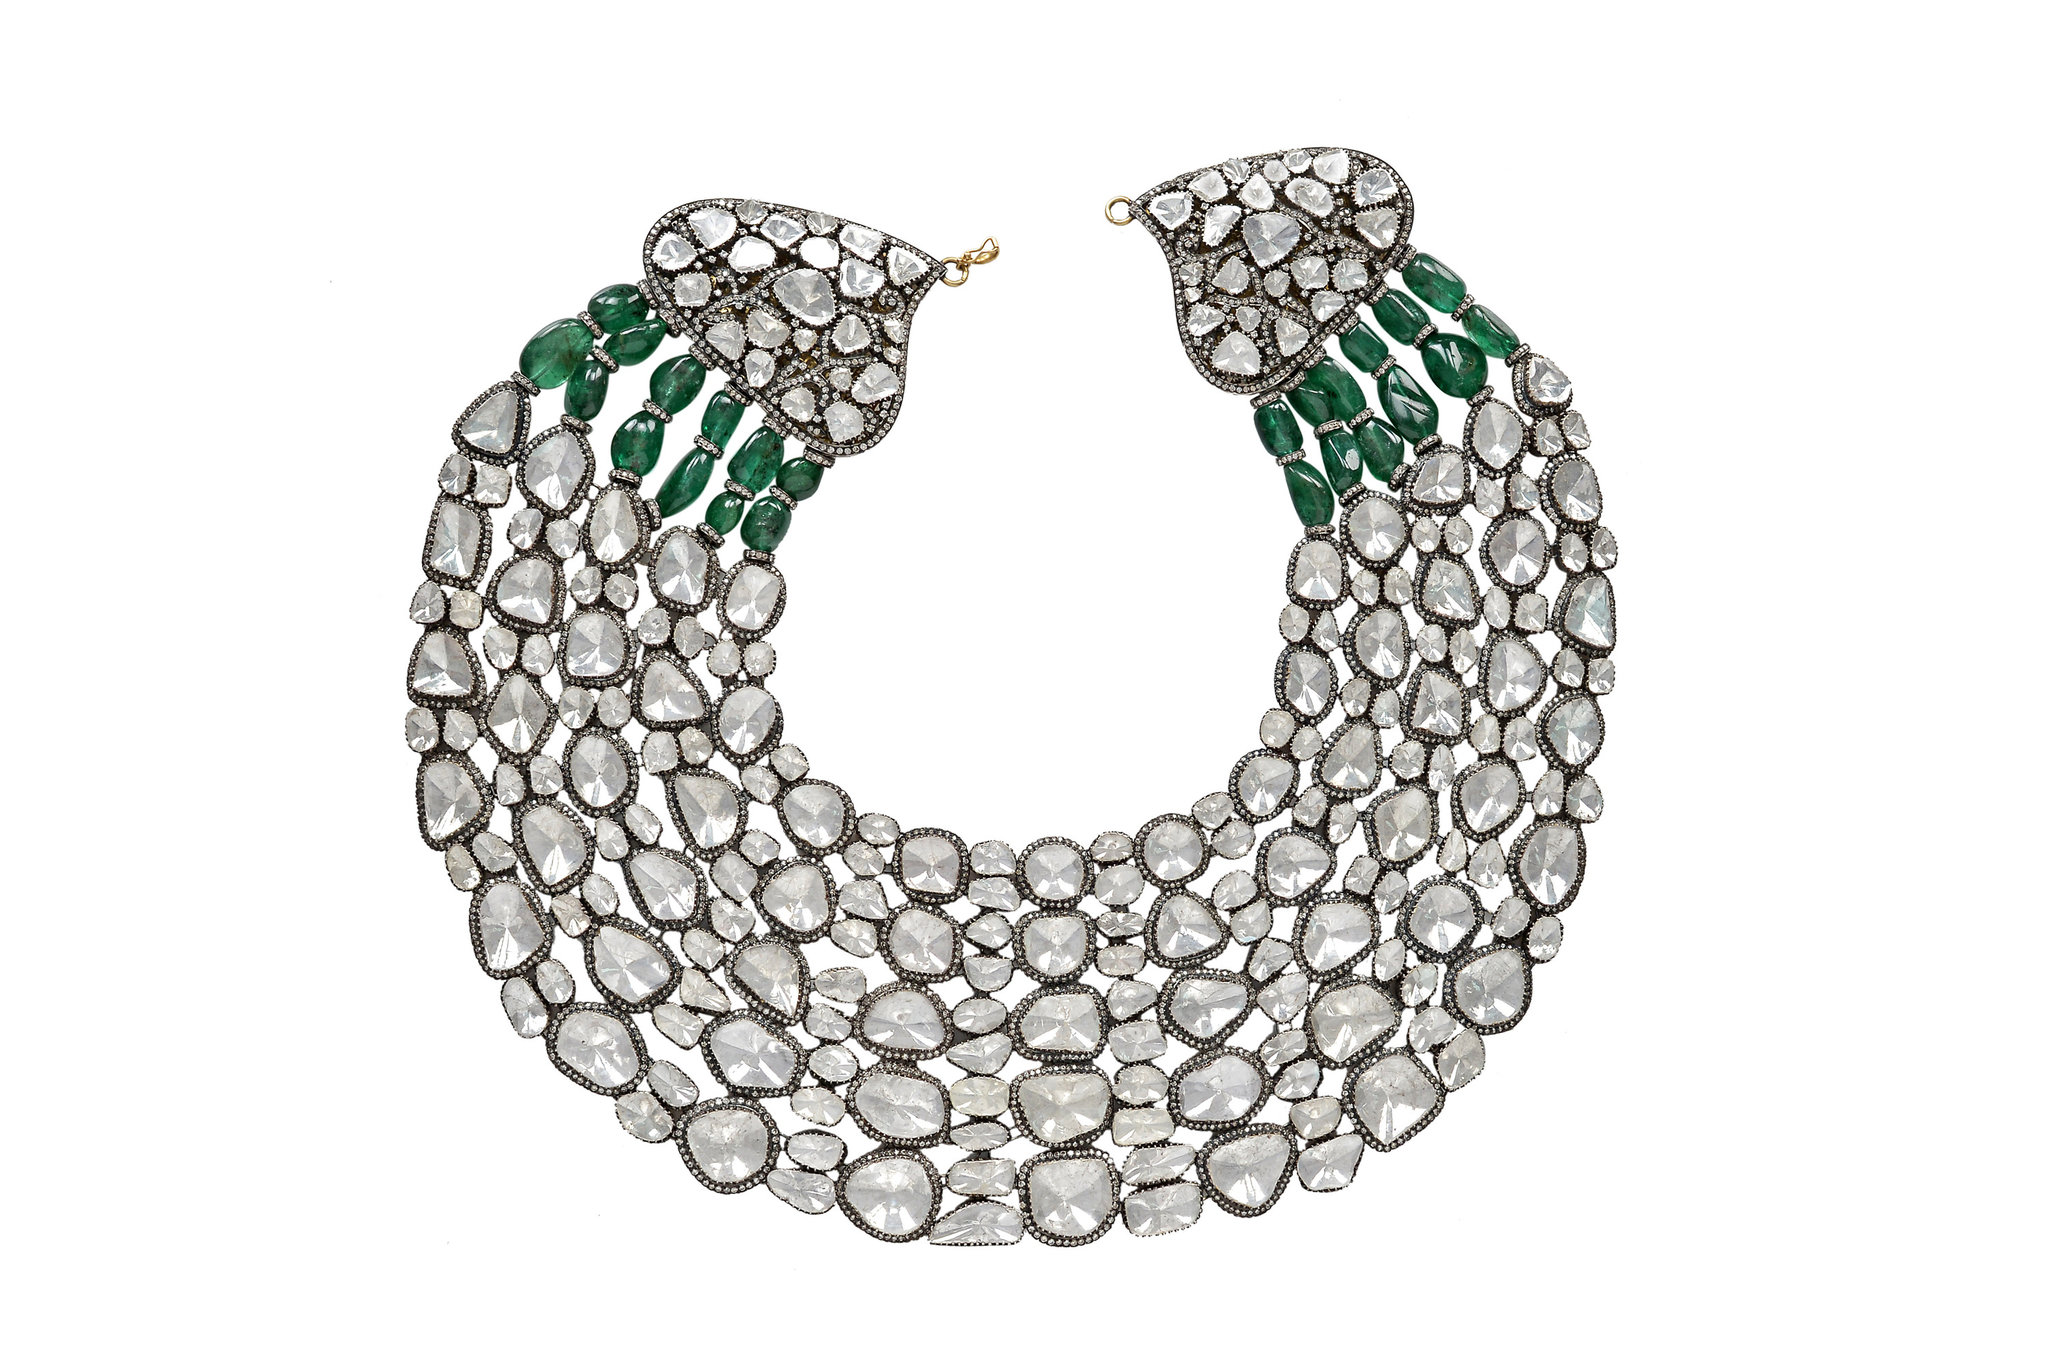 The Maharani: A Diamond and Gem Studded Necklace for The Ages